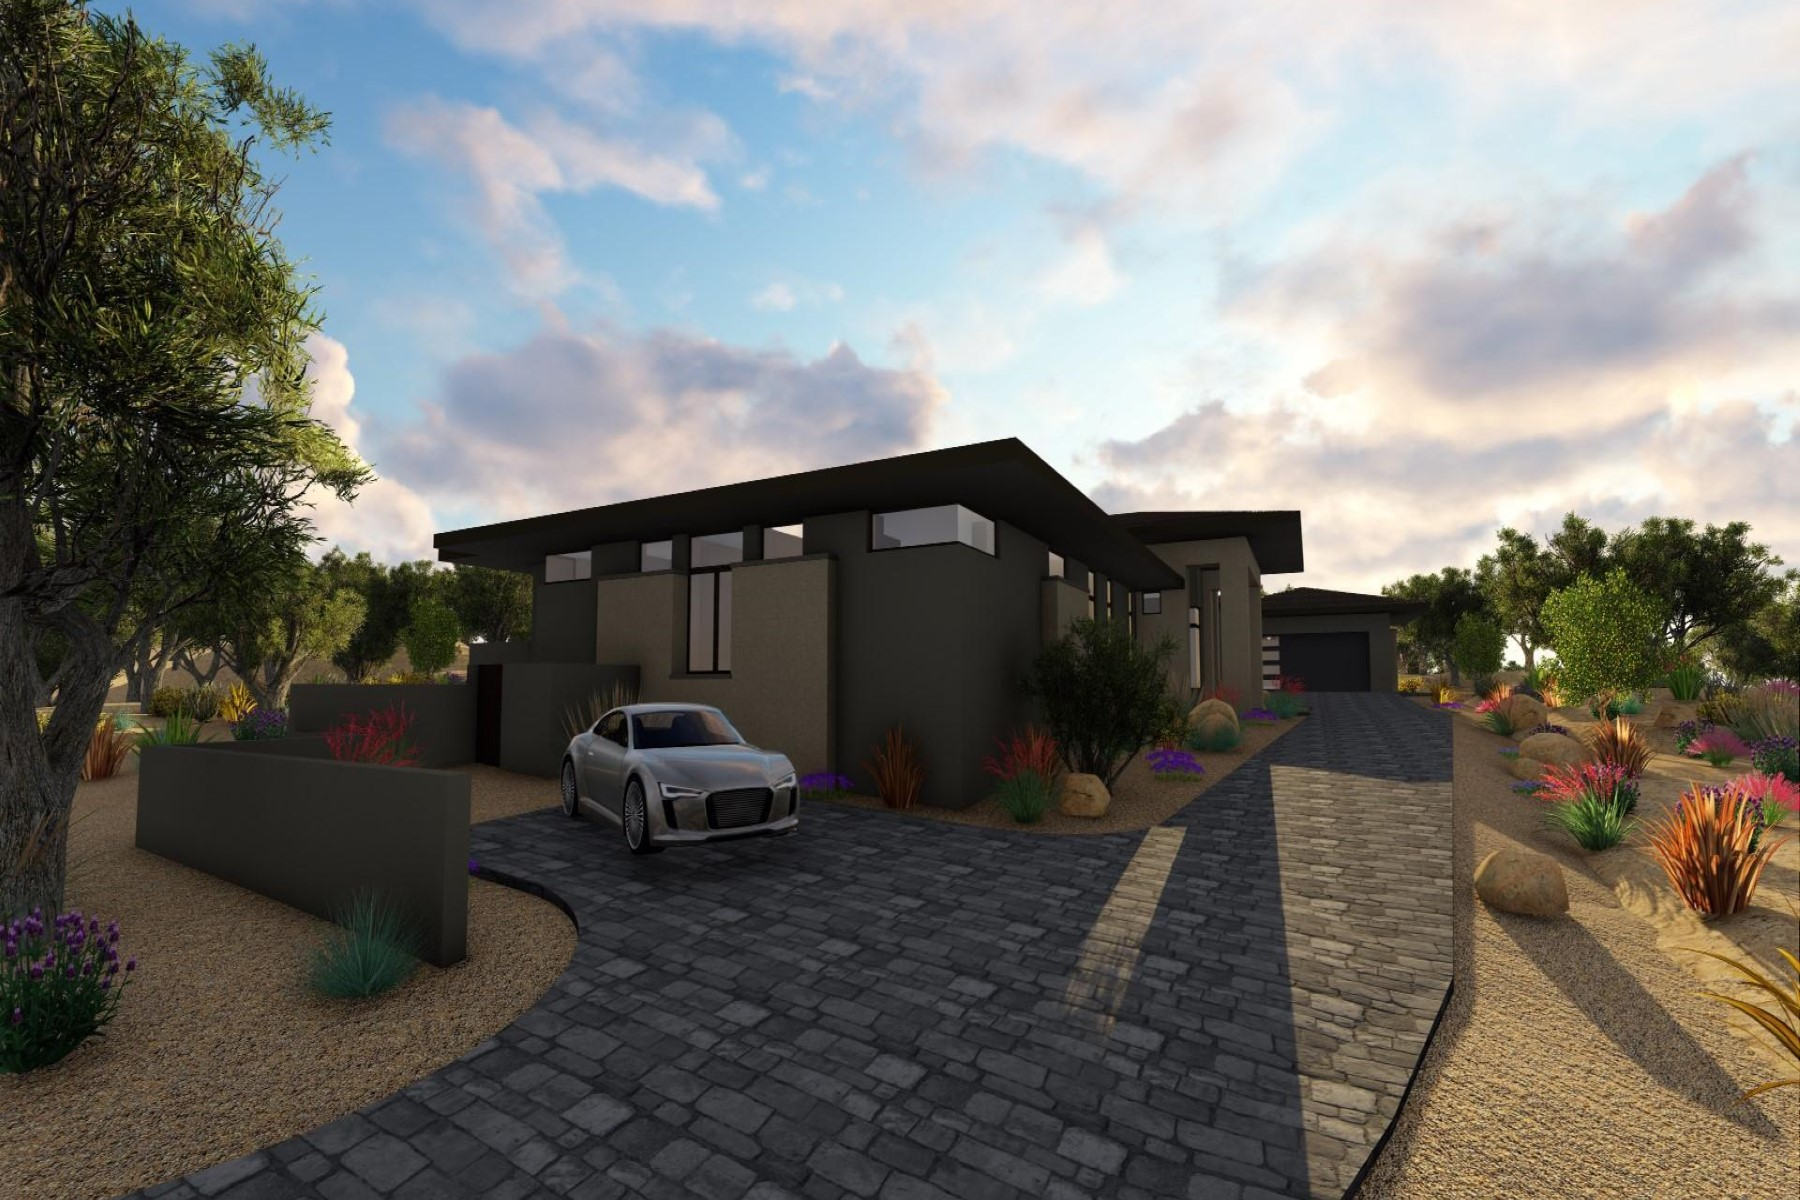 Single Family Home for Sale at New Construction in Desert Mountain 40853 N 108th Way Scottsdale, Arizona, 85262 United States